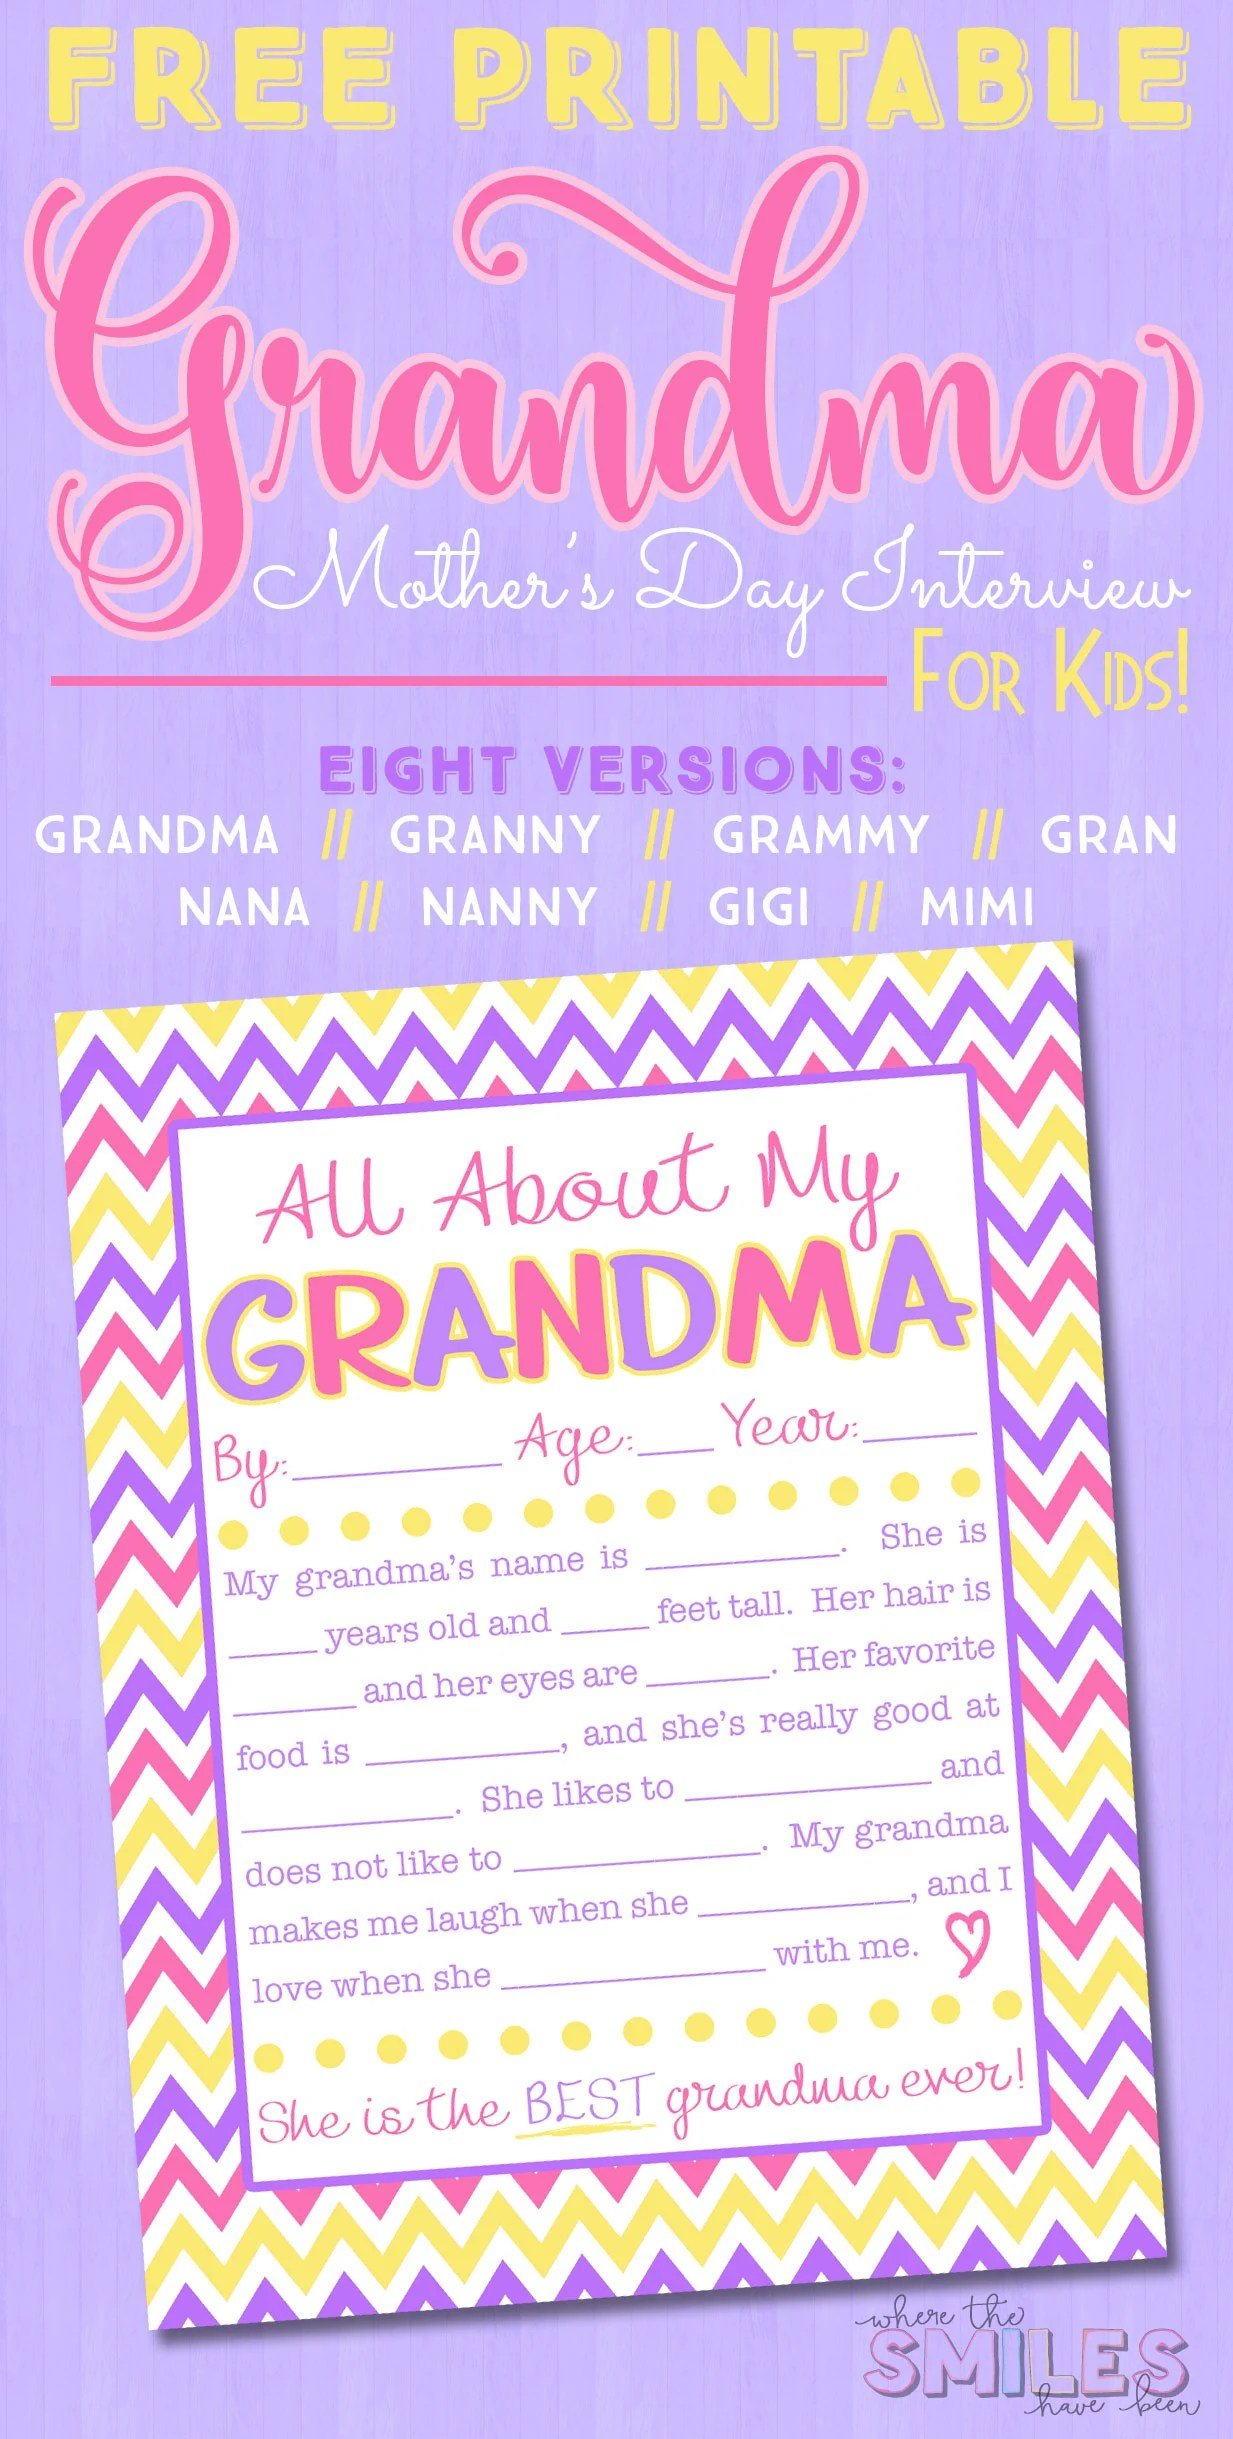 photo about All About My Grandma Printable named All Around My Grandma Job interview with Absolutely free Printable 8